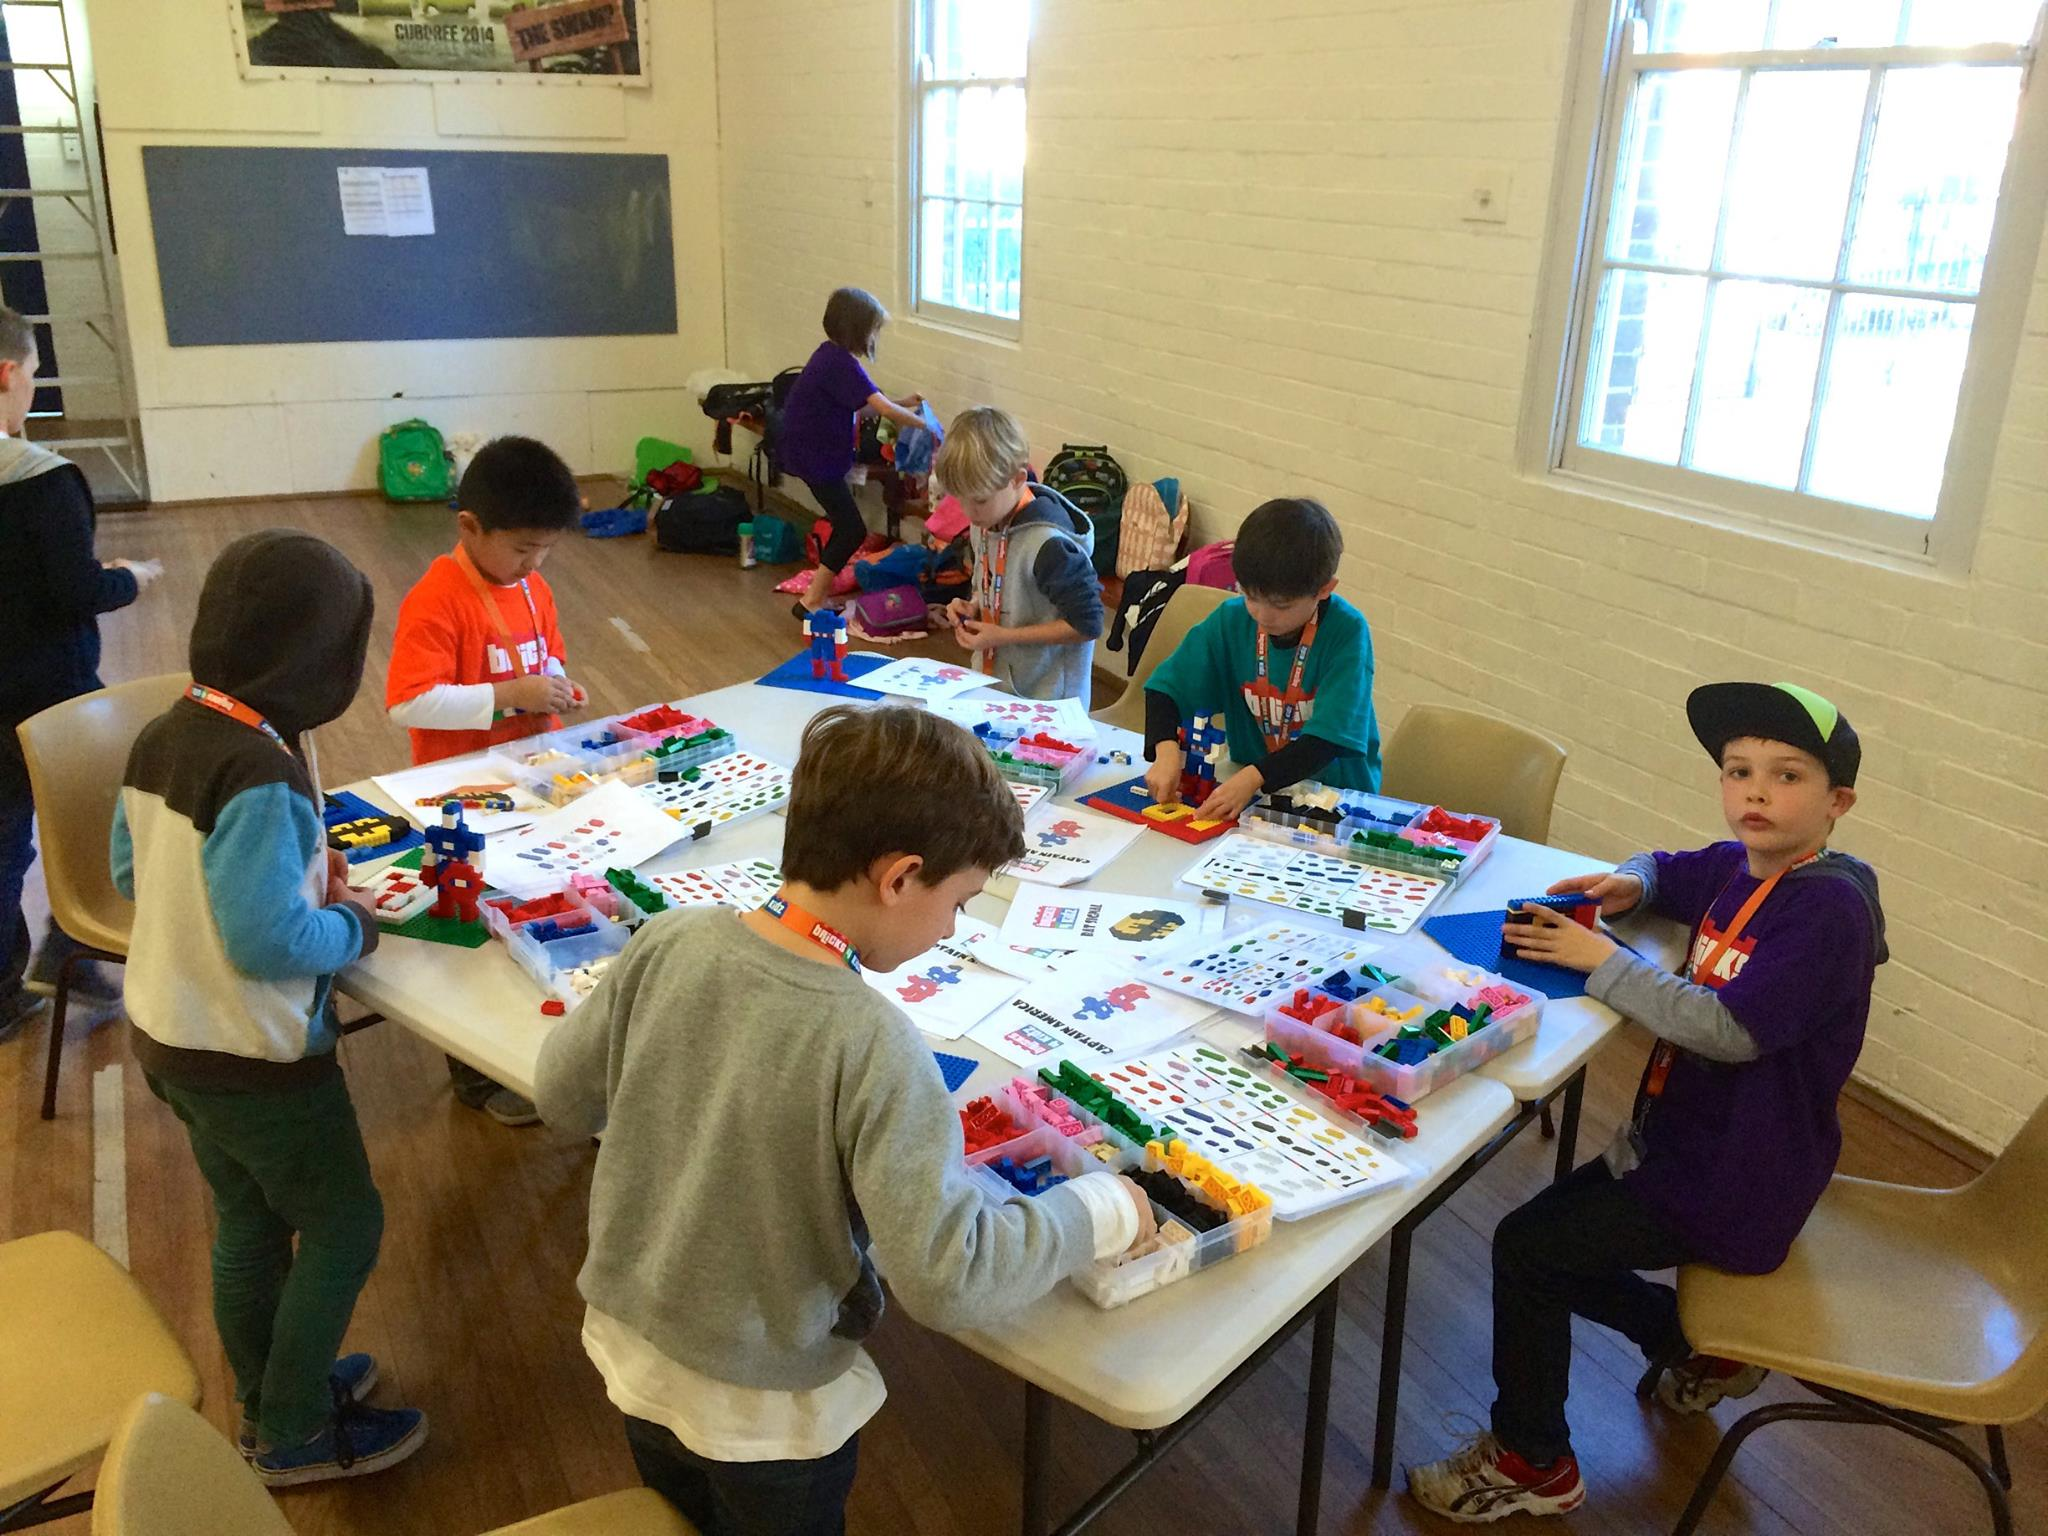 School Holiday Fun with Bricks 4 Kidz